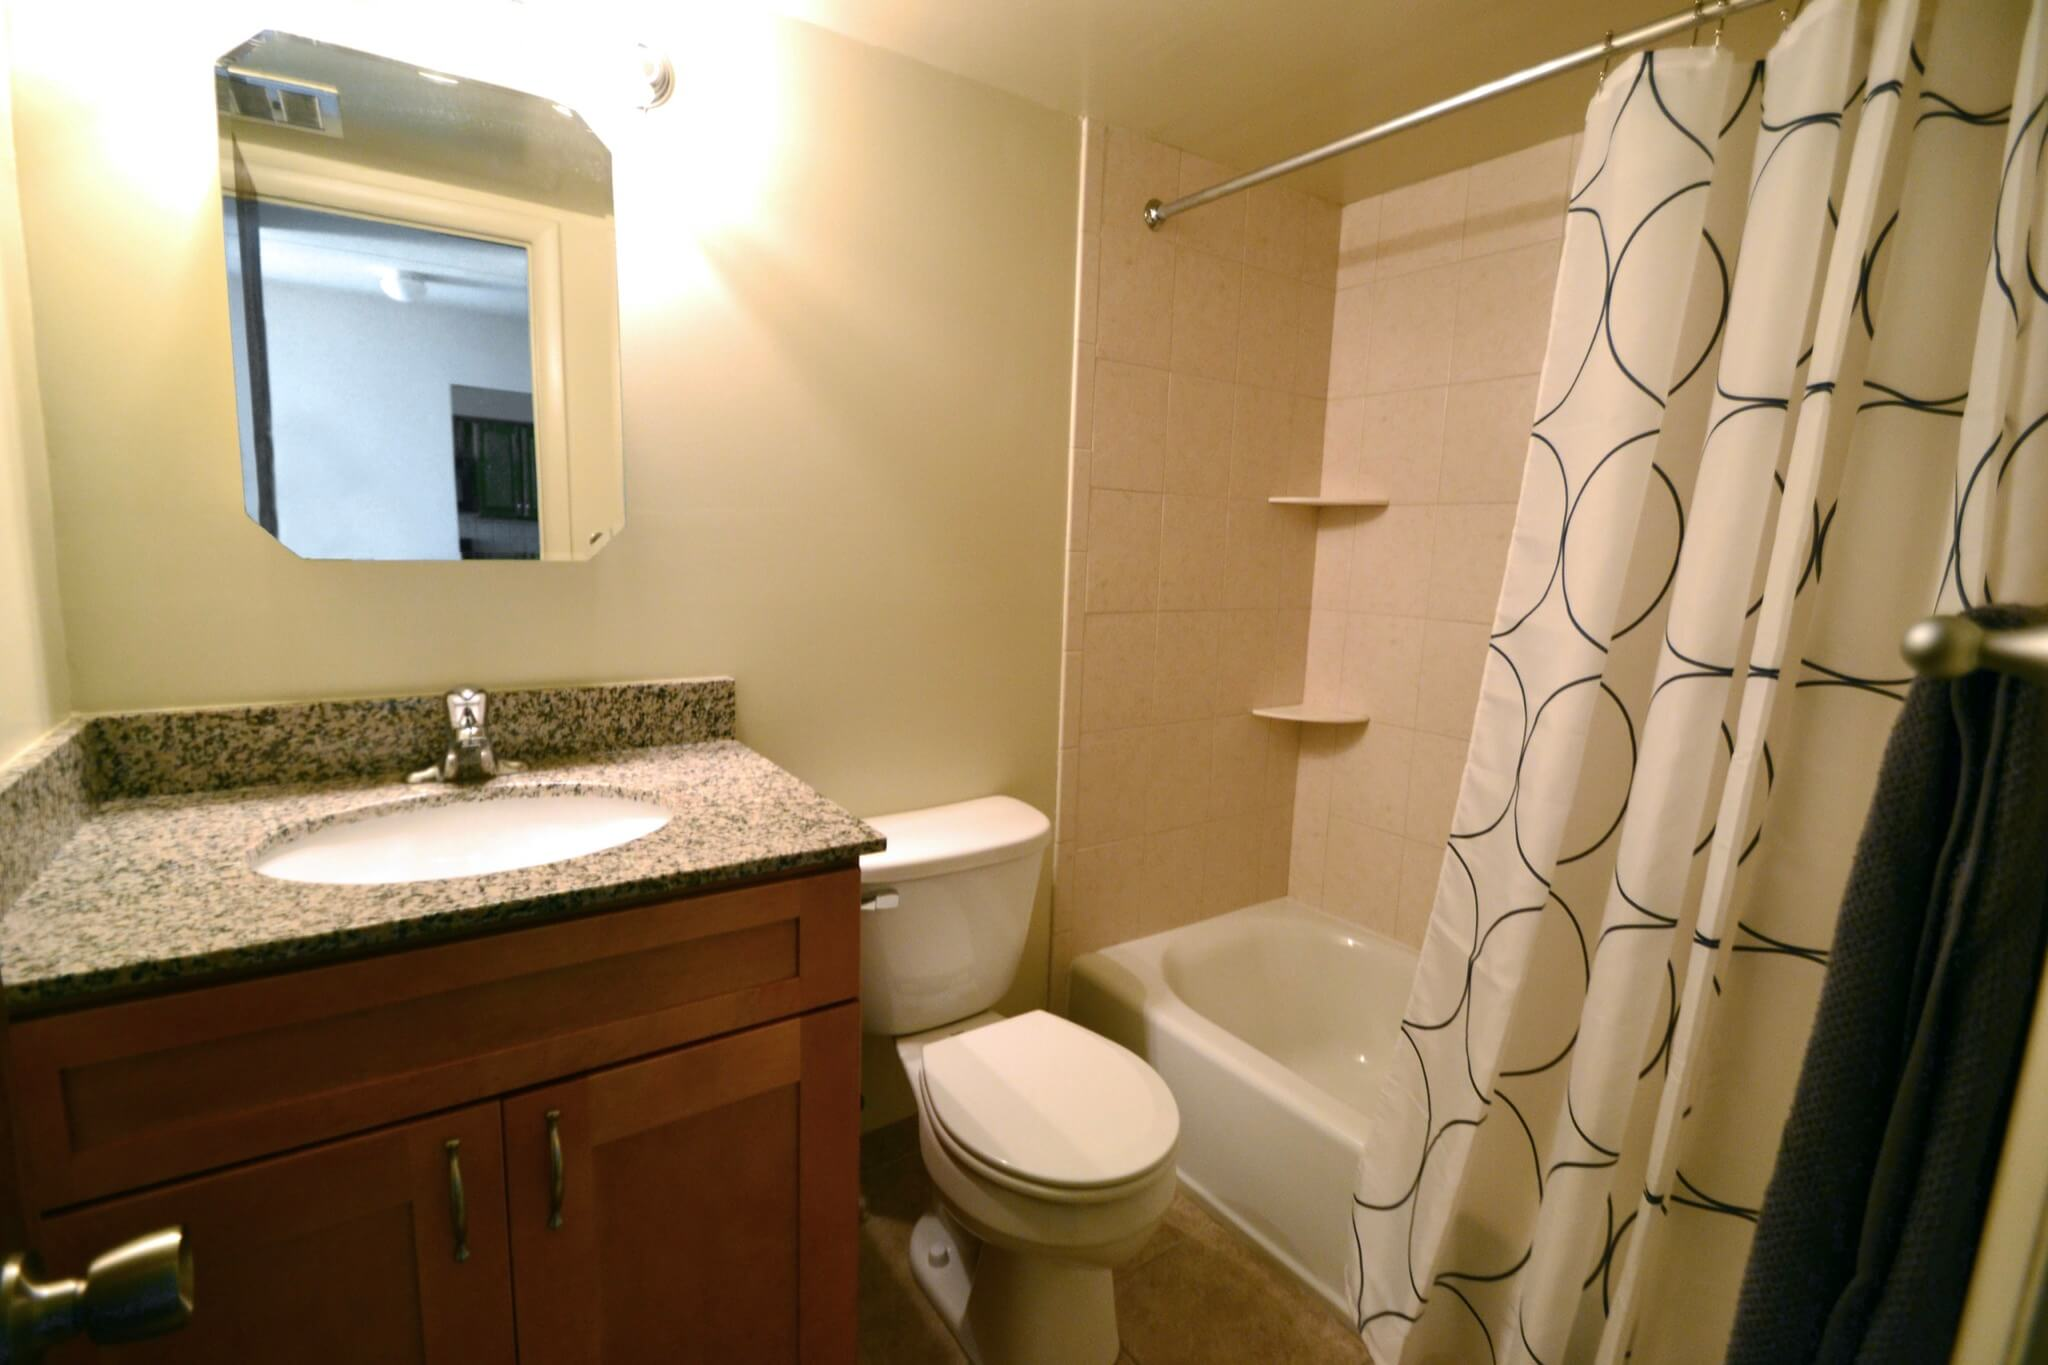 2 Bedroom Apartment Bathroom